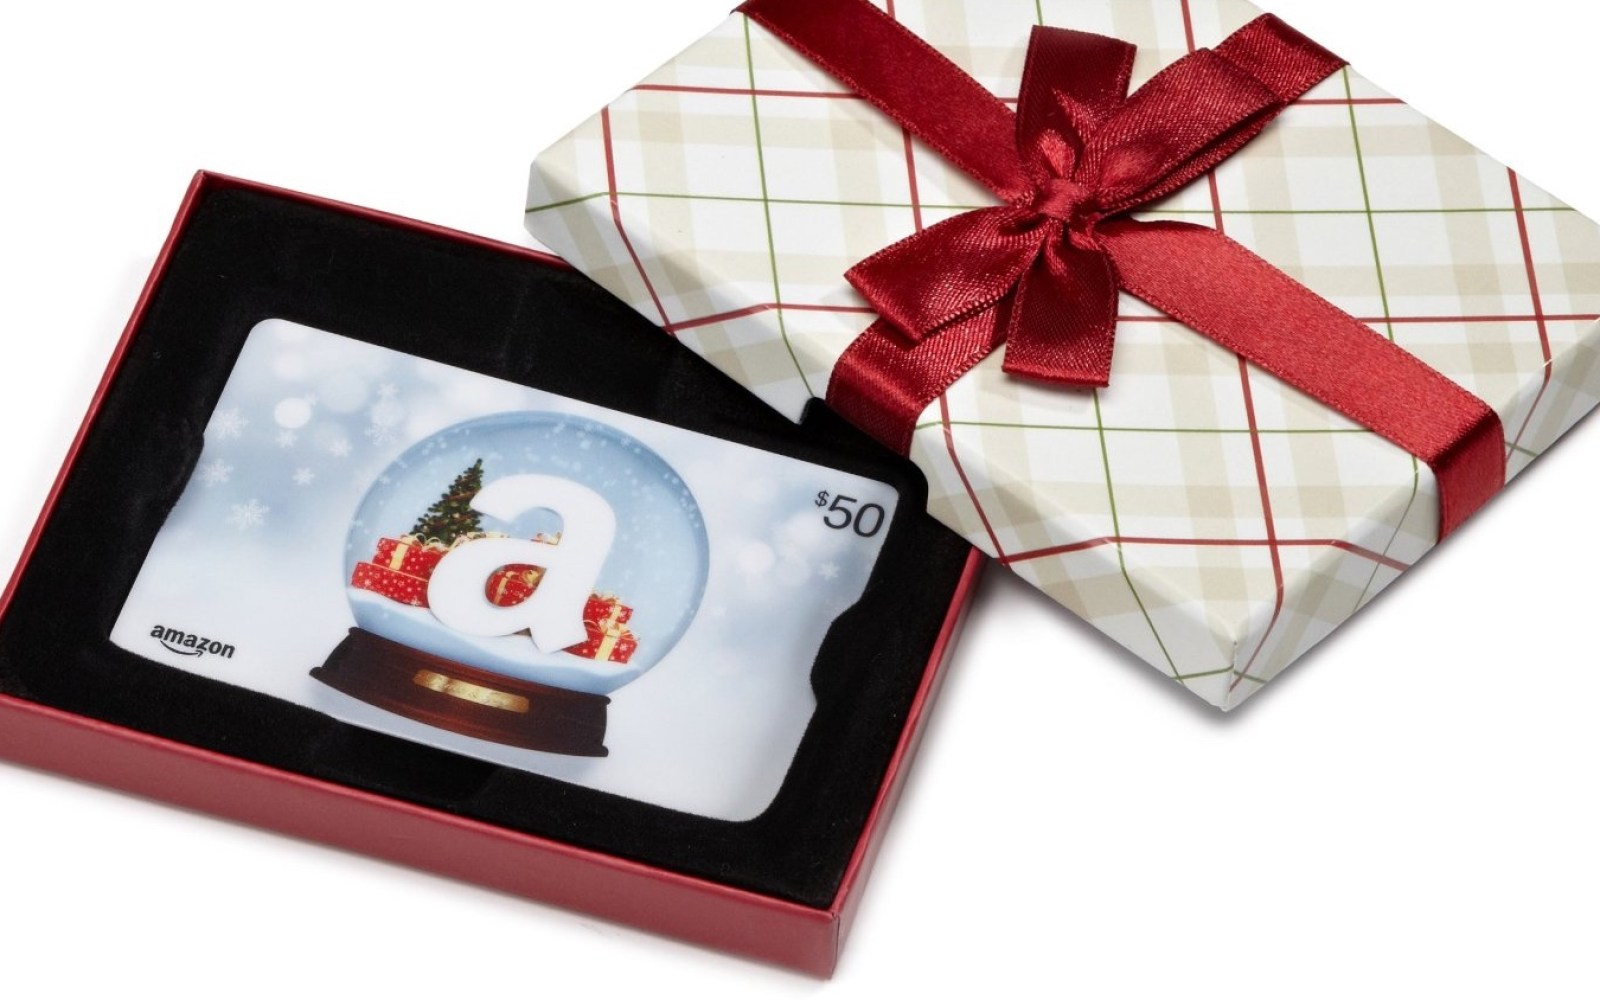 9to5Toys Christmas bailout: last-minute deals on Apple products and email gift cards (in time to get under the tree)